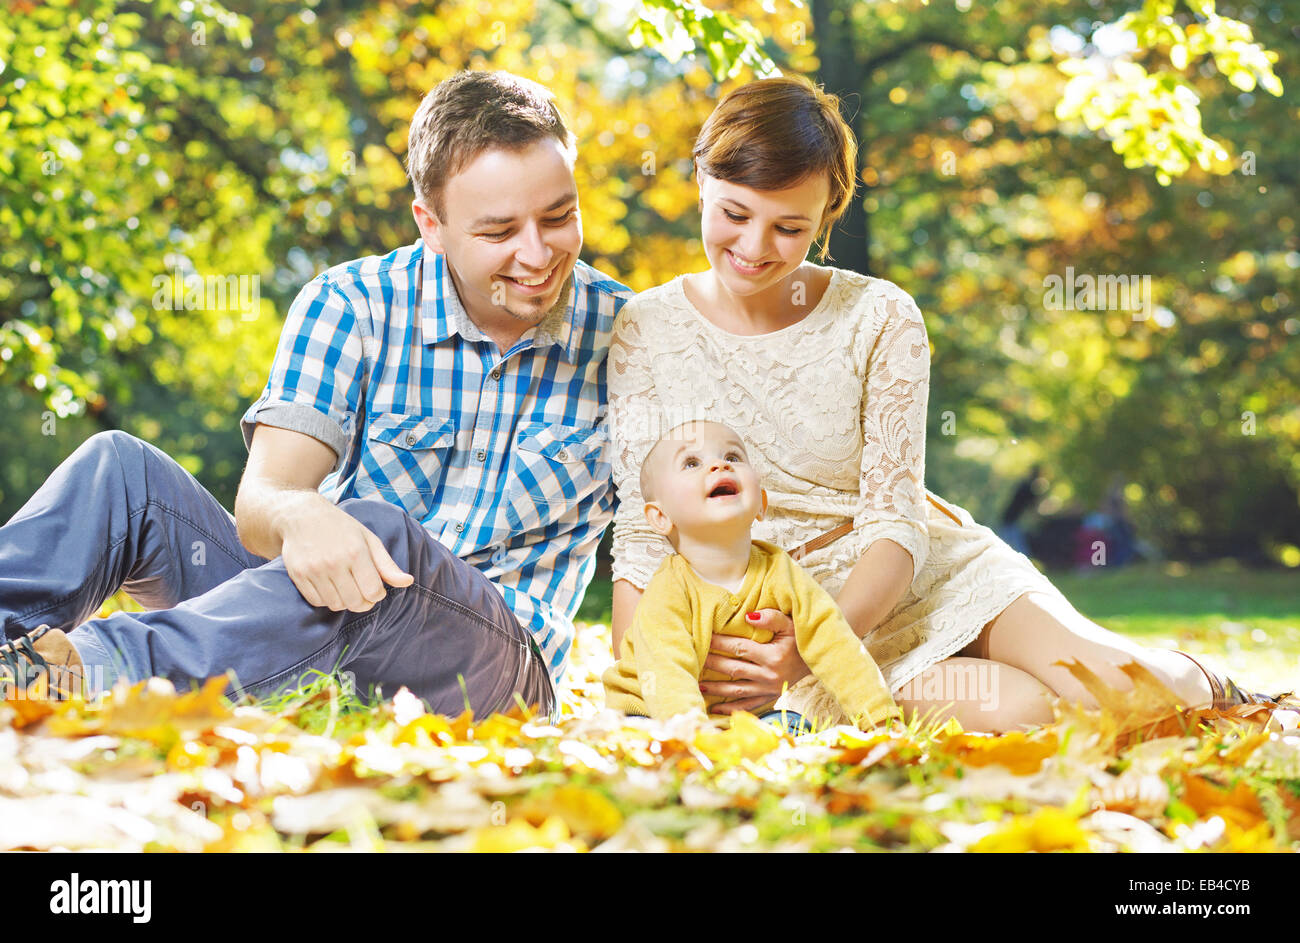 Glad parents observing their cute baby - Stock Image